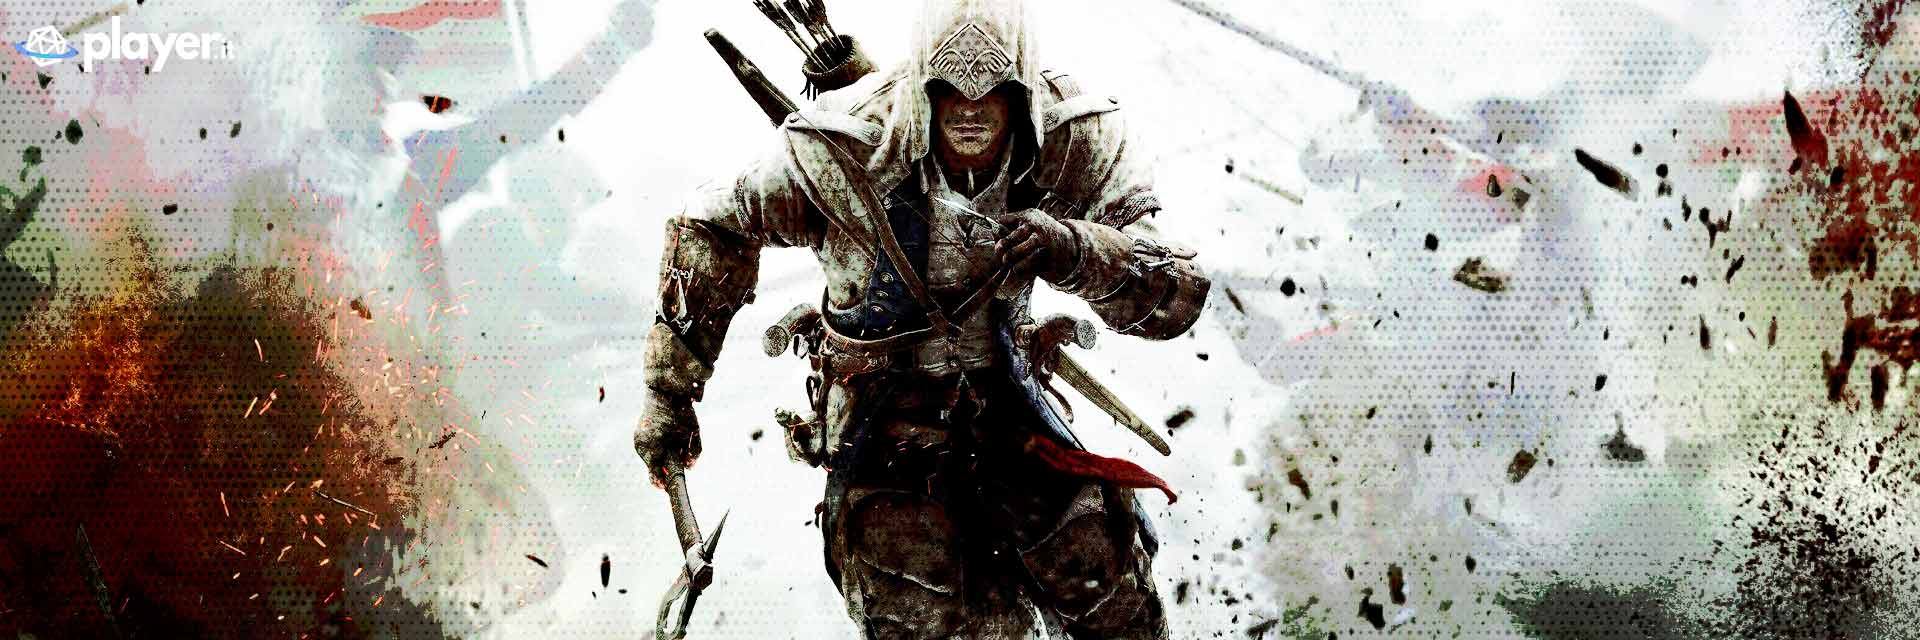 Assassin's Creed III wallpaper in hd